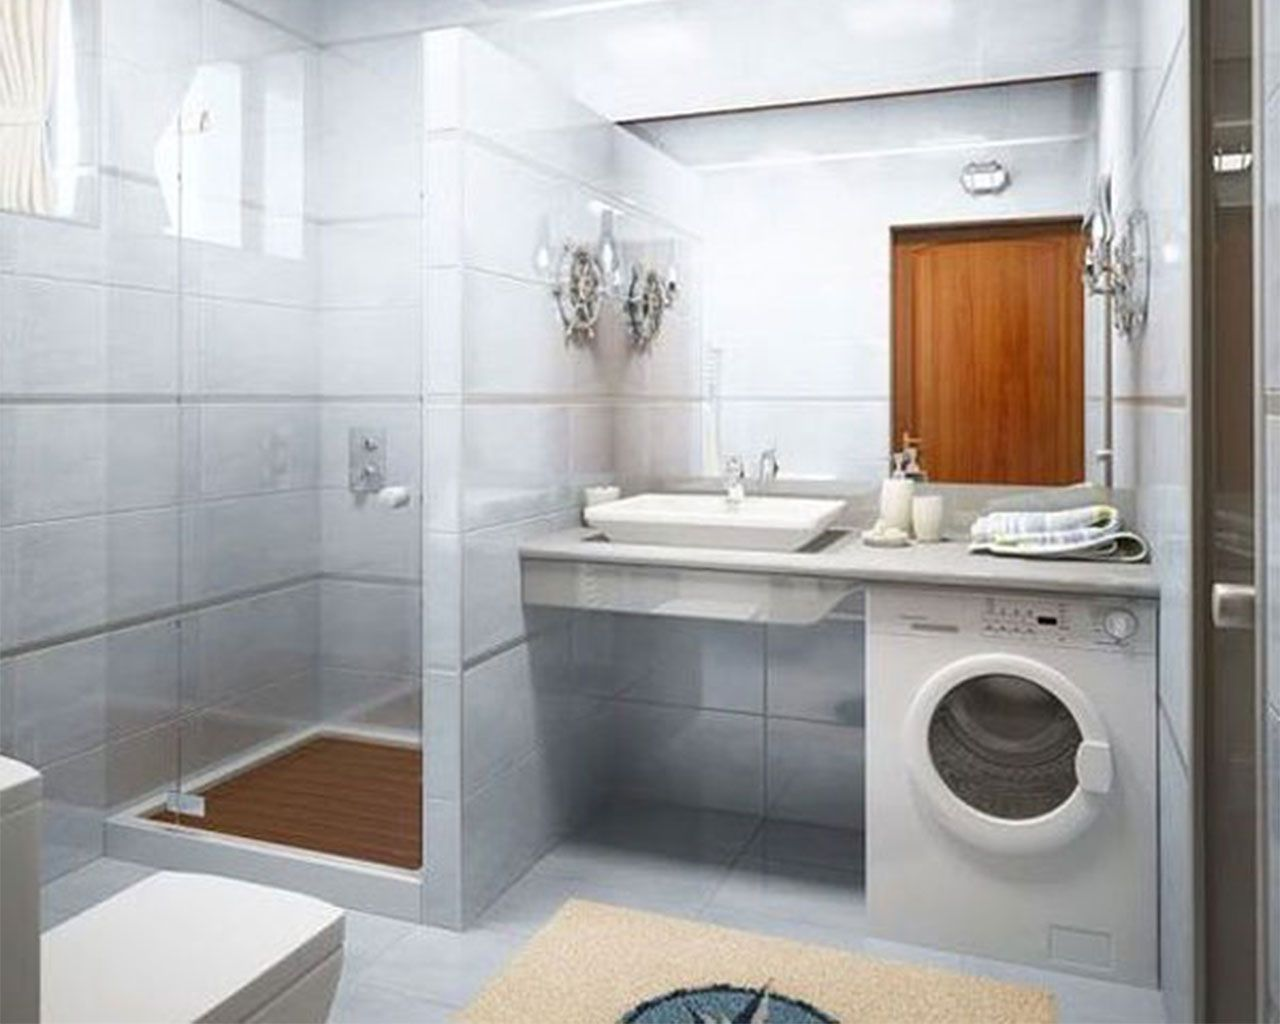 Simple bathrooms with shower - Perfect Small Bathroom Design Idea In White Interior Nuance With Simple White Vessel Sink And Mirror And Washing Machine And Shower Also Beige Rug And